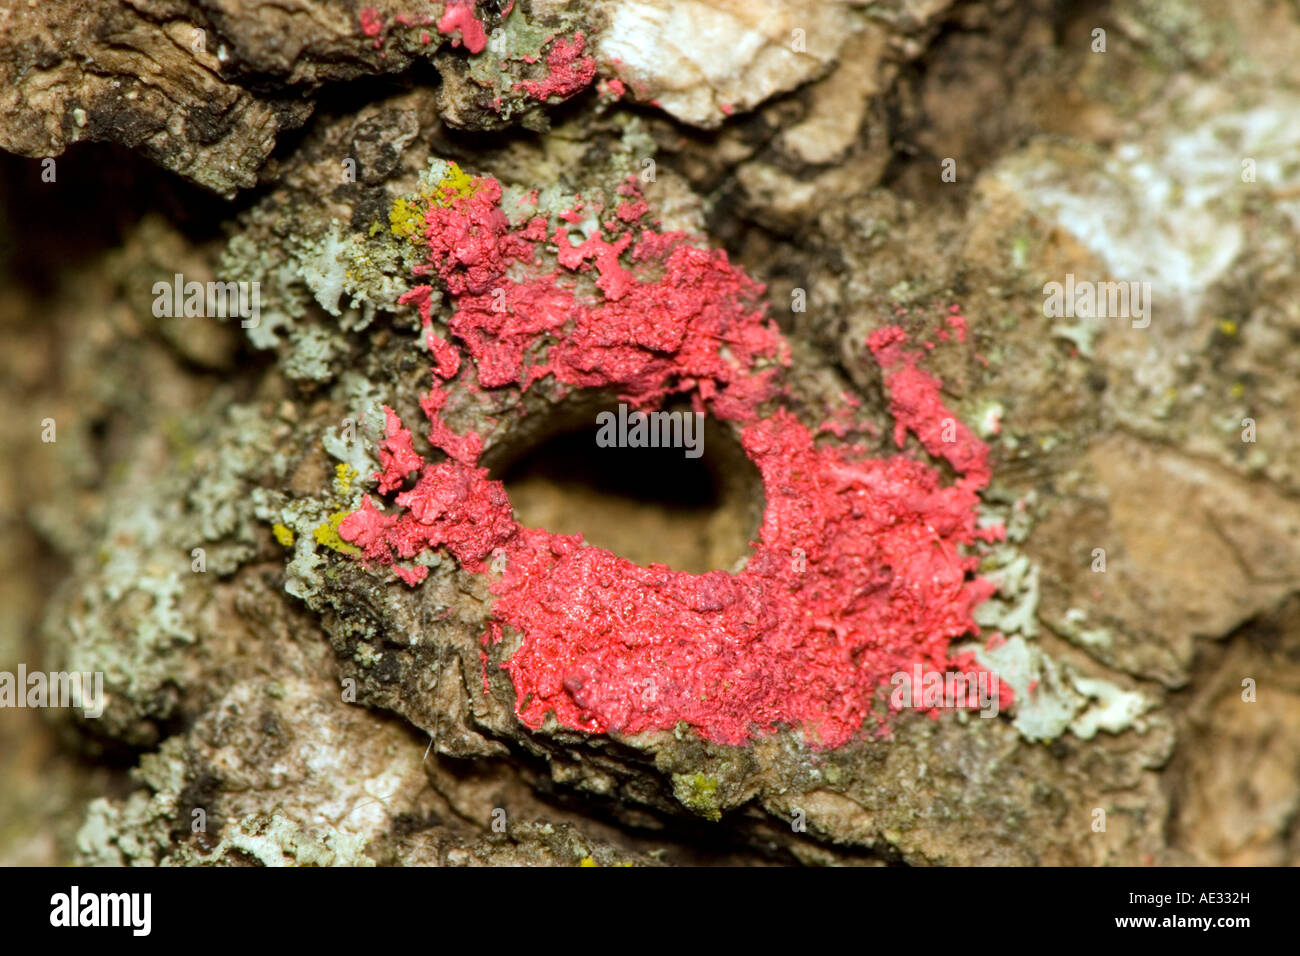 Characteristic d-shaped exit hole of the emerald ash borer, marked in red paint - Stock Image